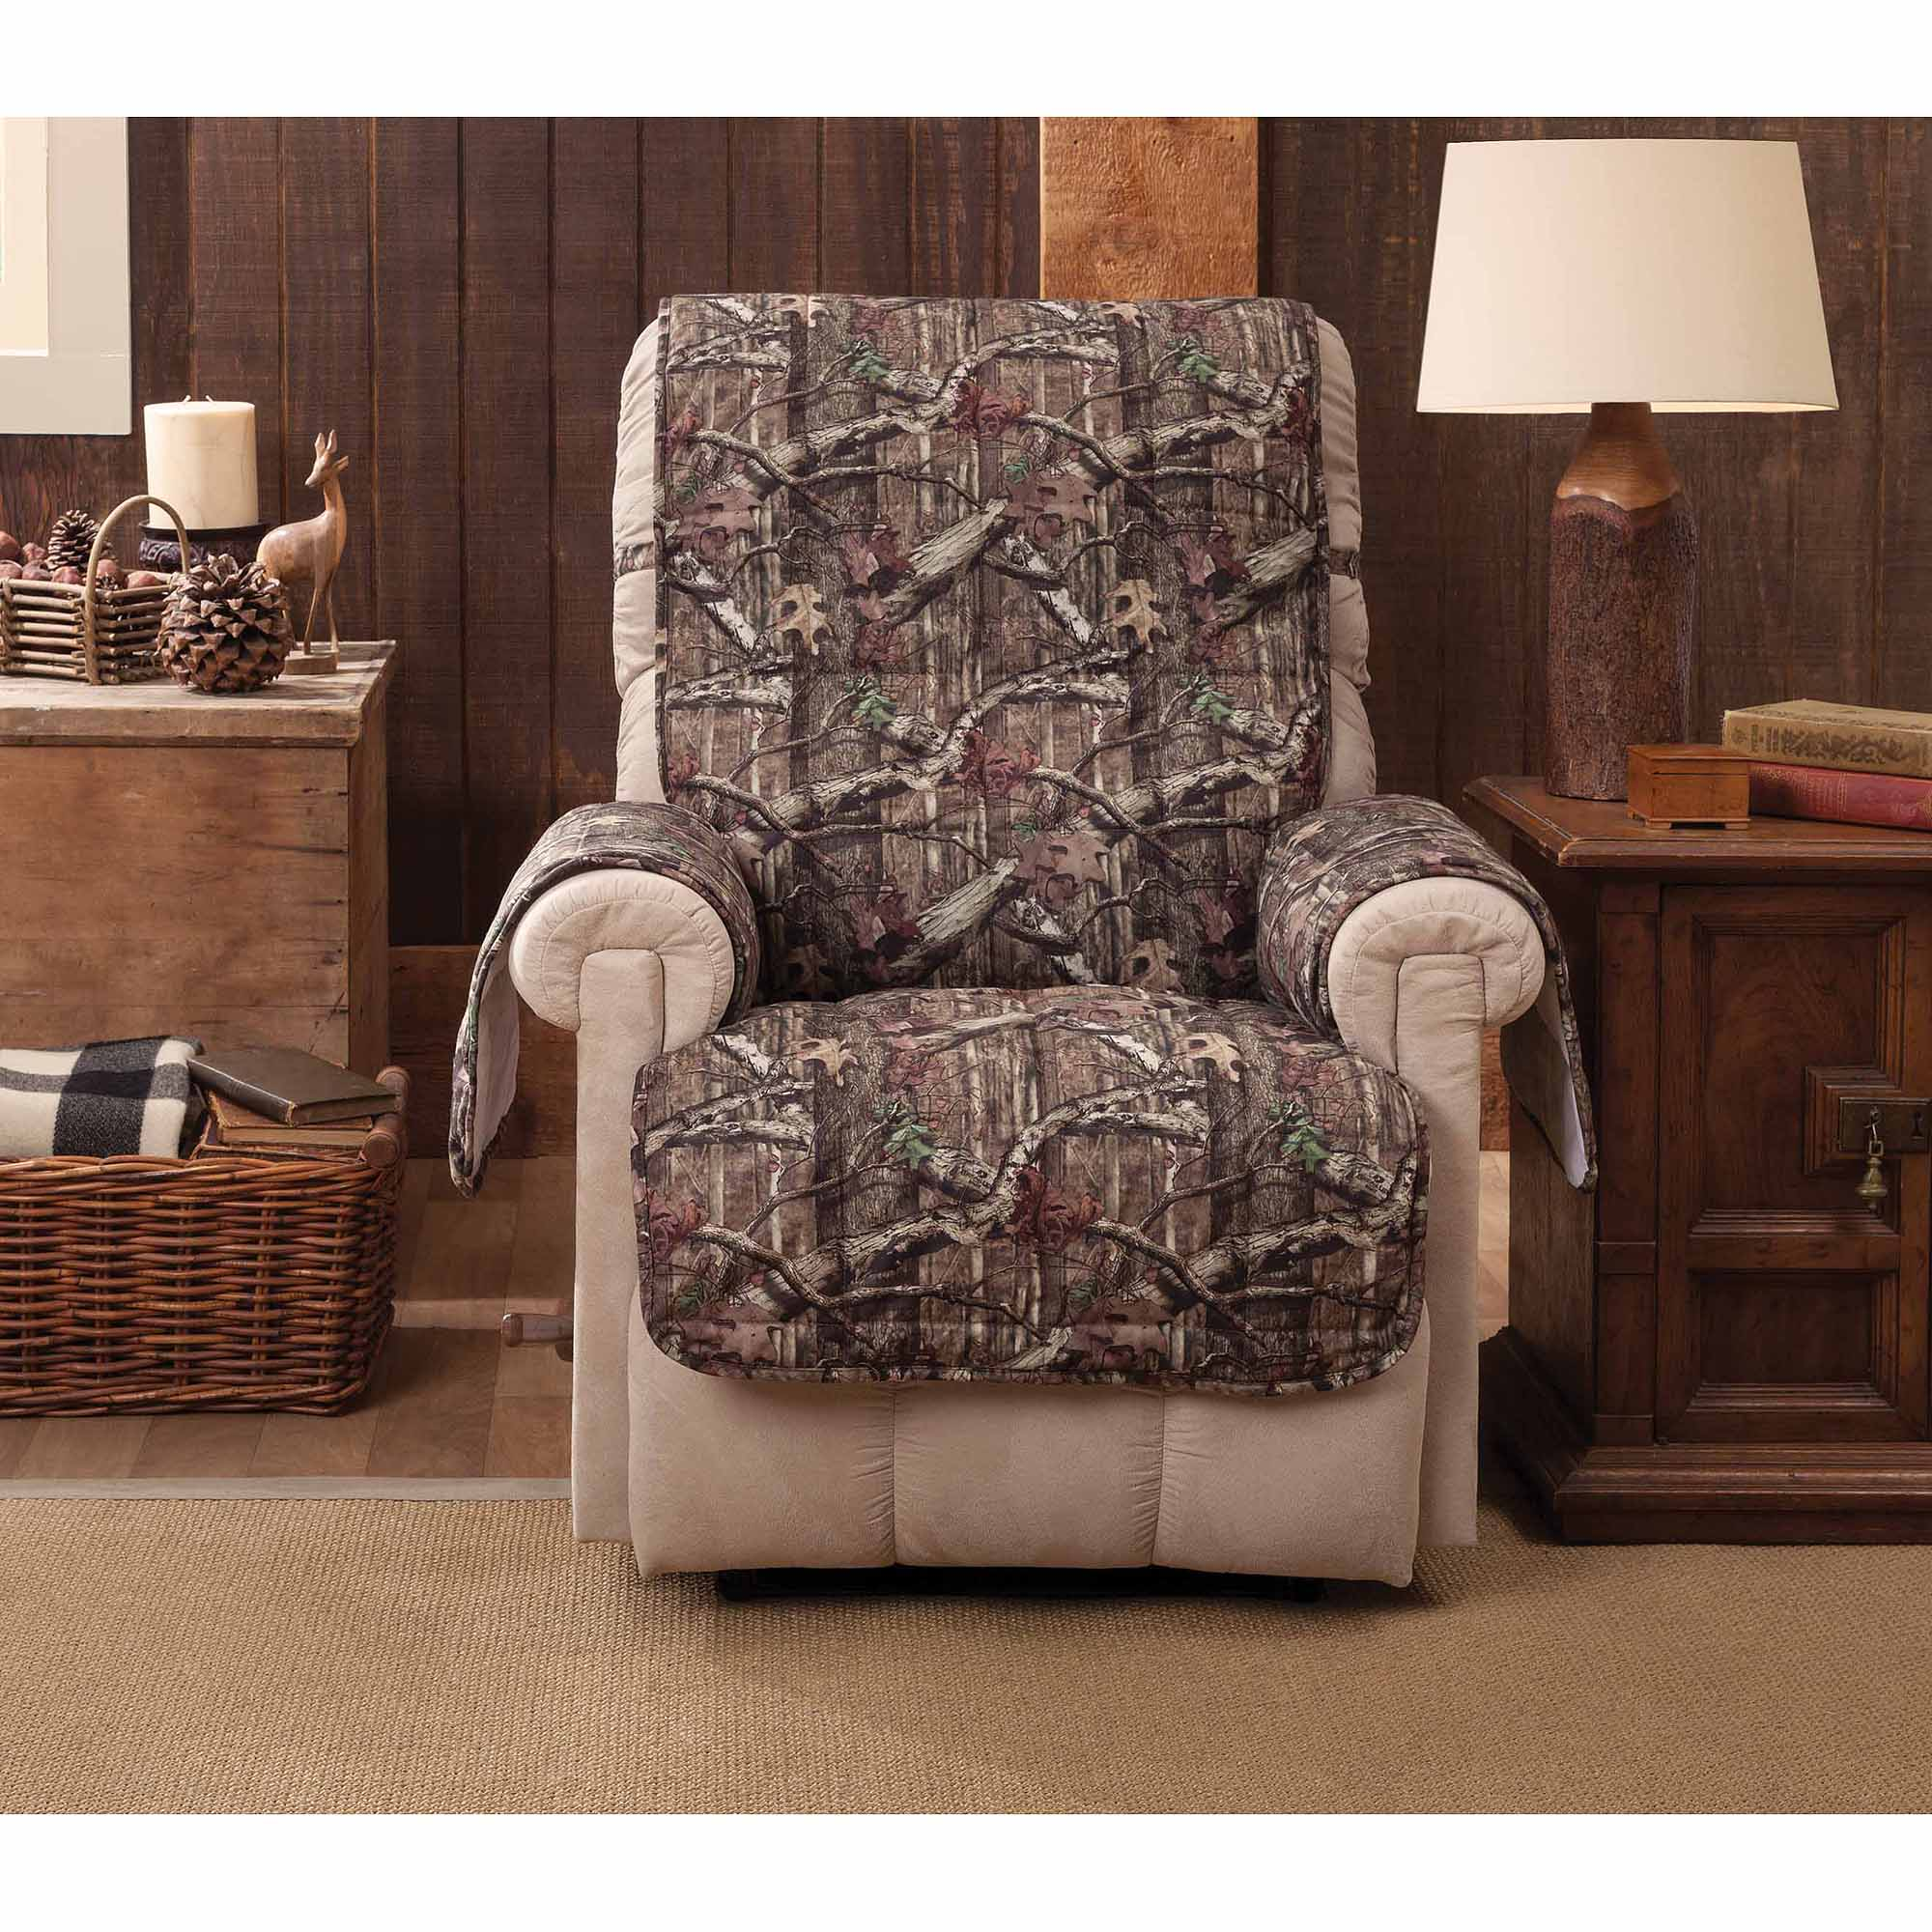 Recliner Covers